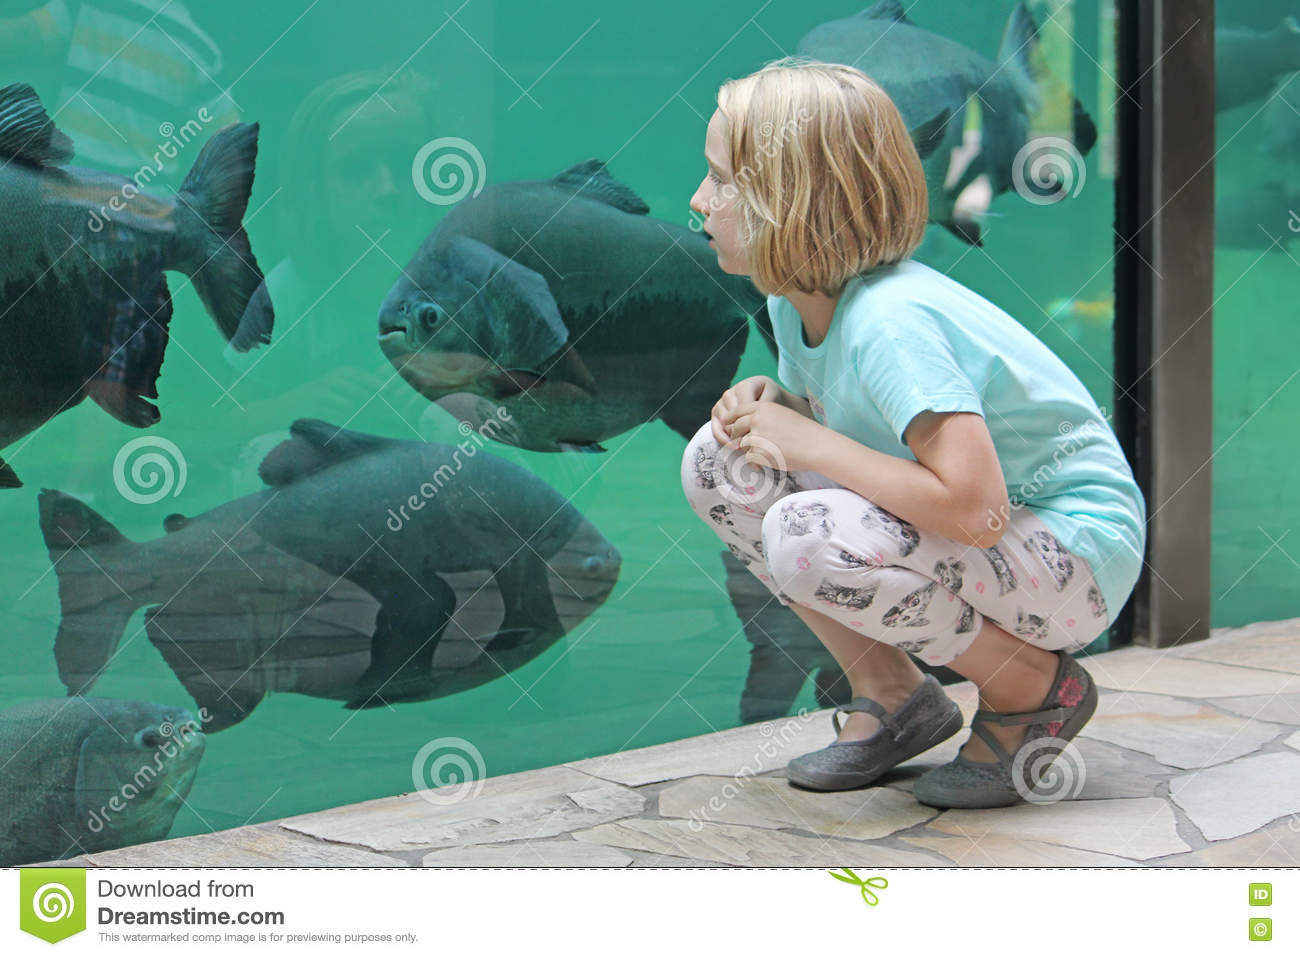 Poissons de mer de observation de fille d 39 enfant dans un grand aquarium image stock image du - Grand poisson de mer ...